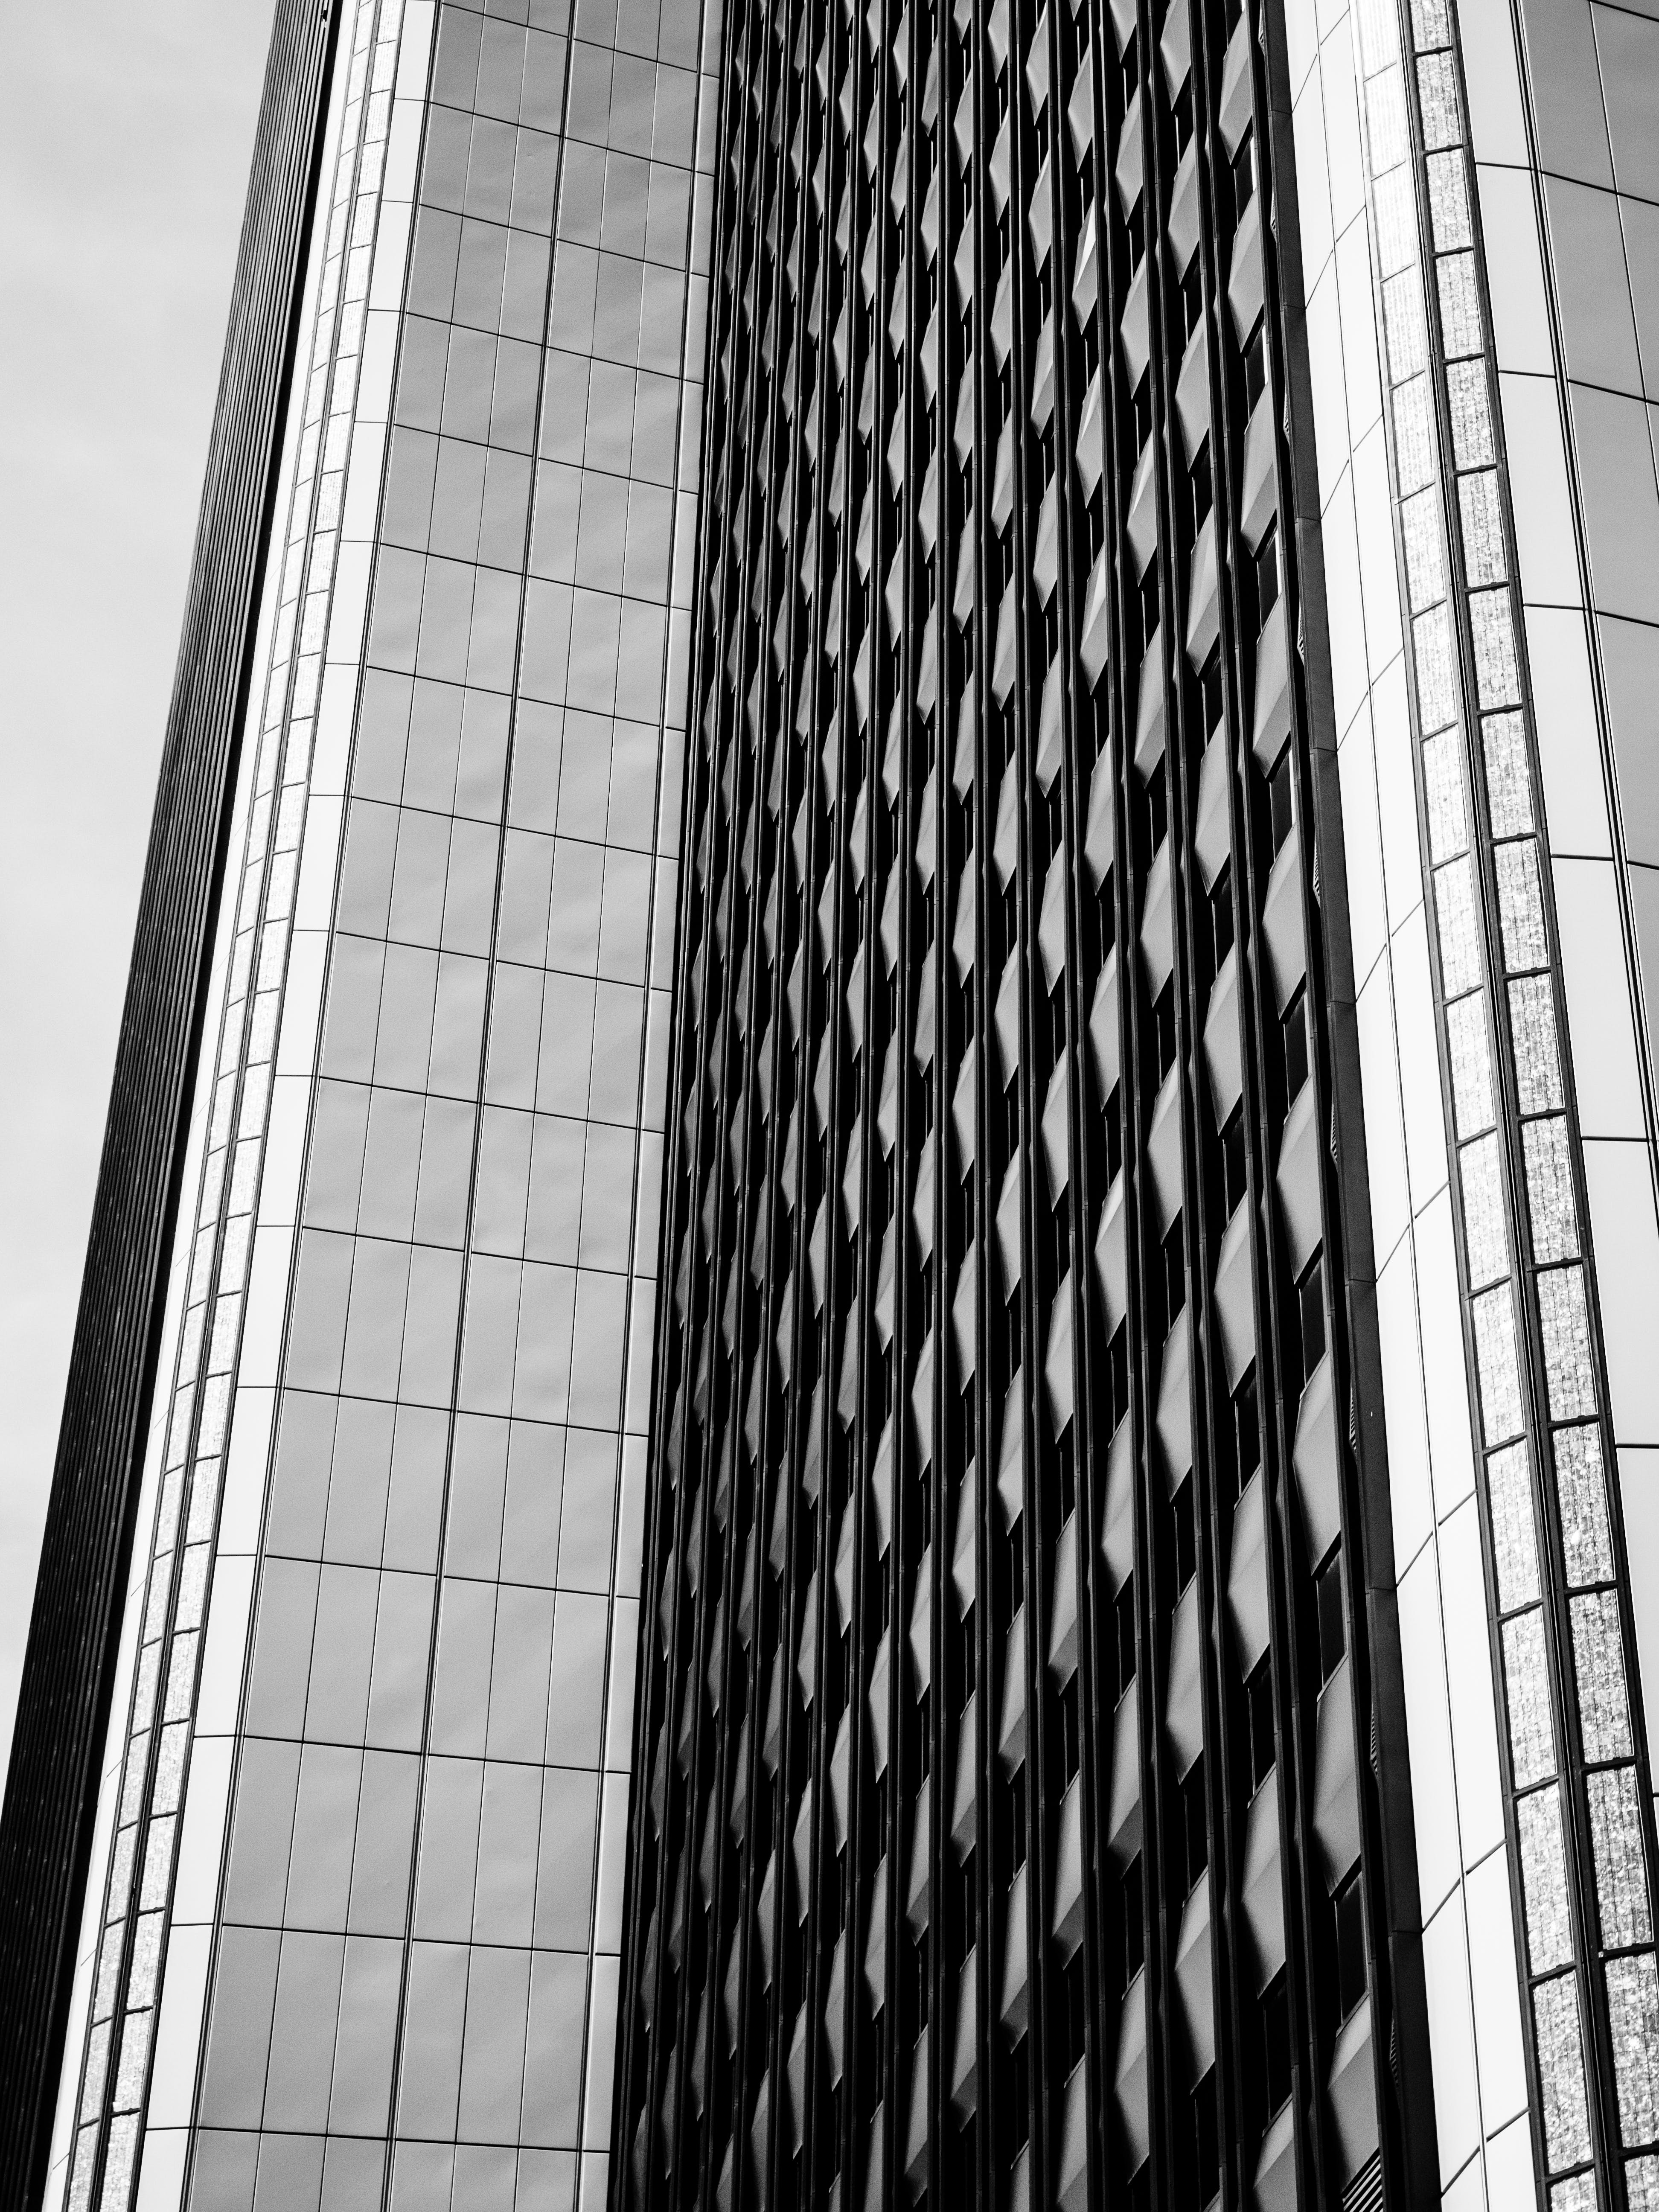 Free stock photo of black and white, black and-white, building, bw